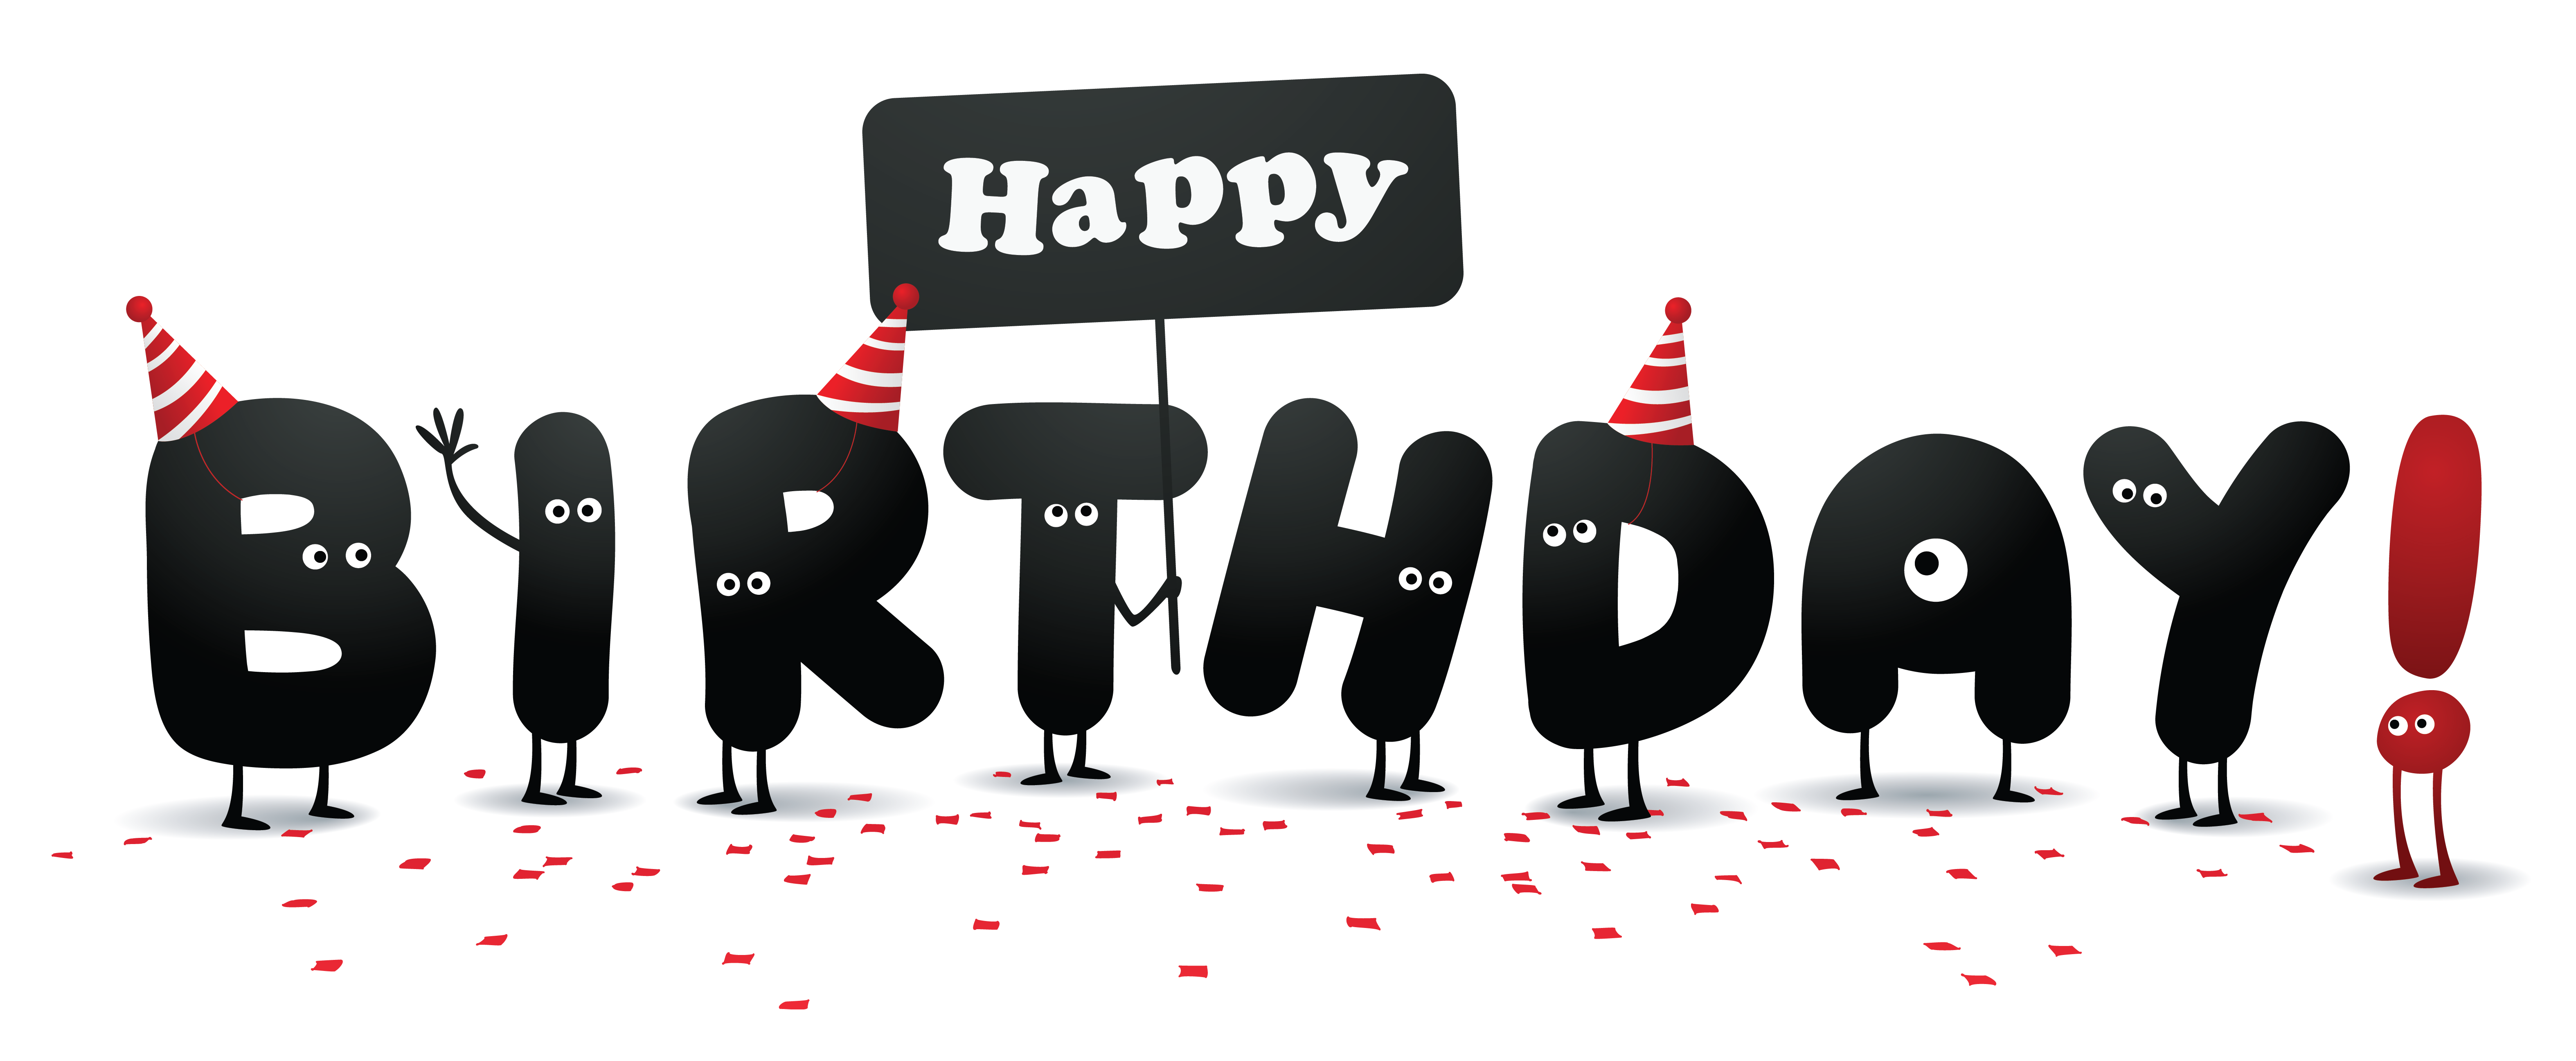 Free animated clipart birthday transparent Birthday PNG HD Animated Transparent Birthday HD Animated.PNG Images ... transparent